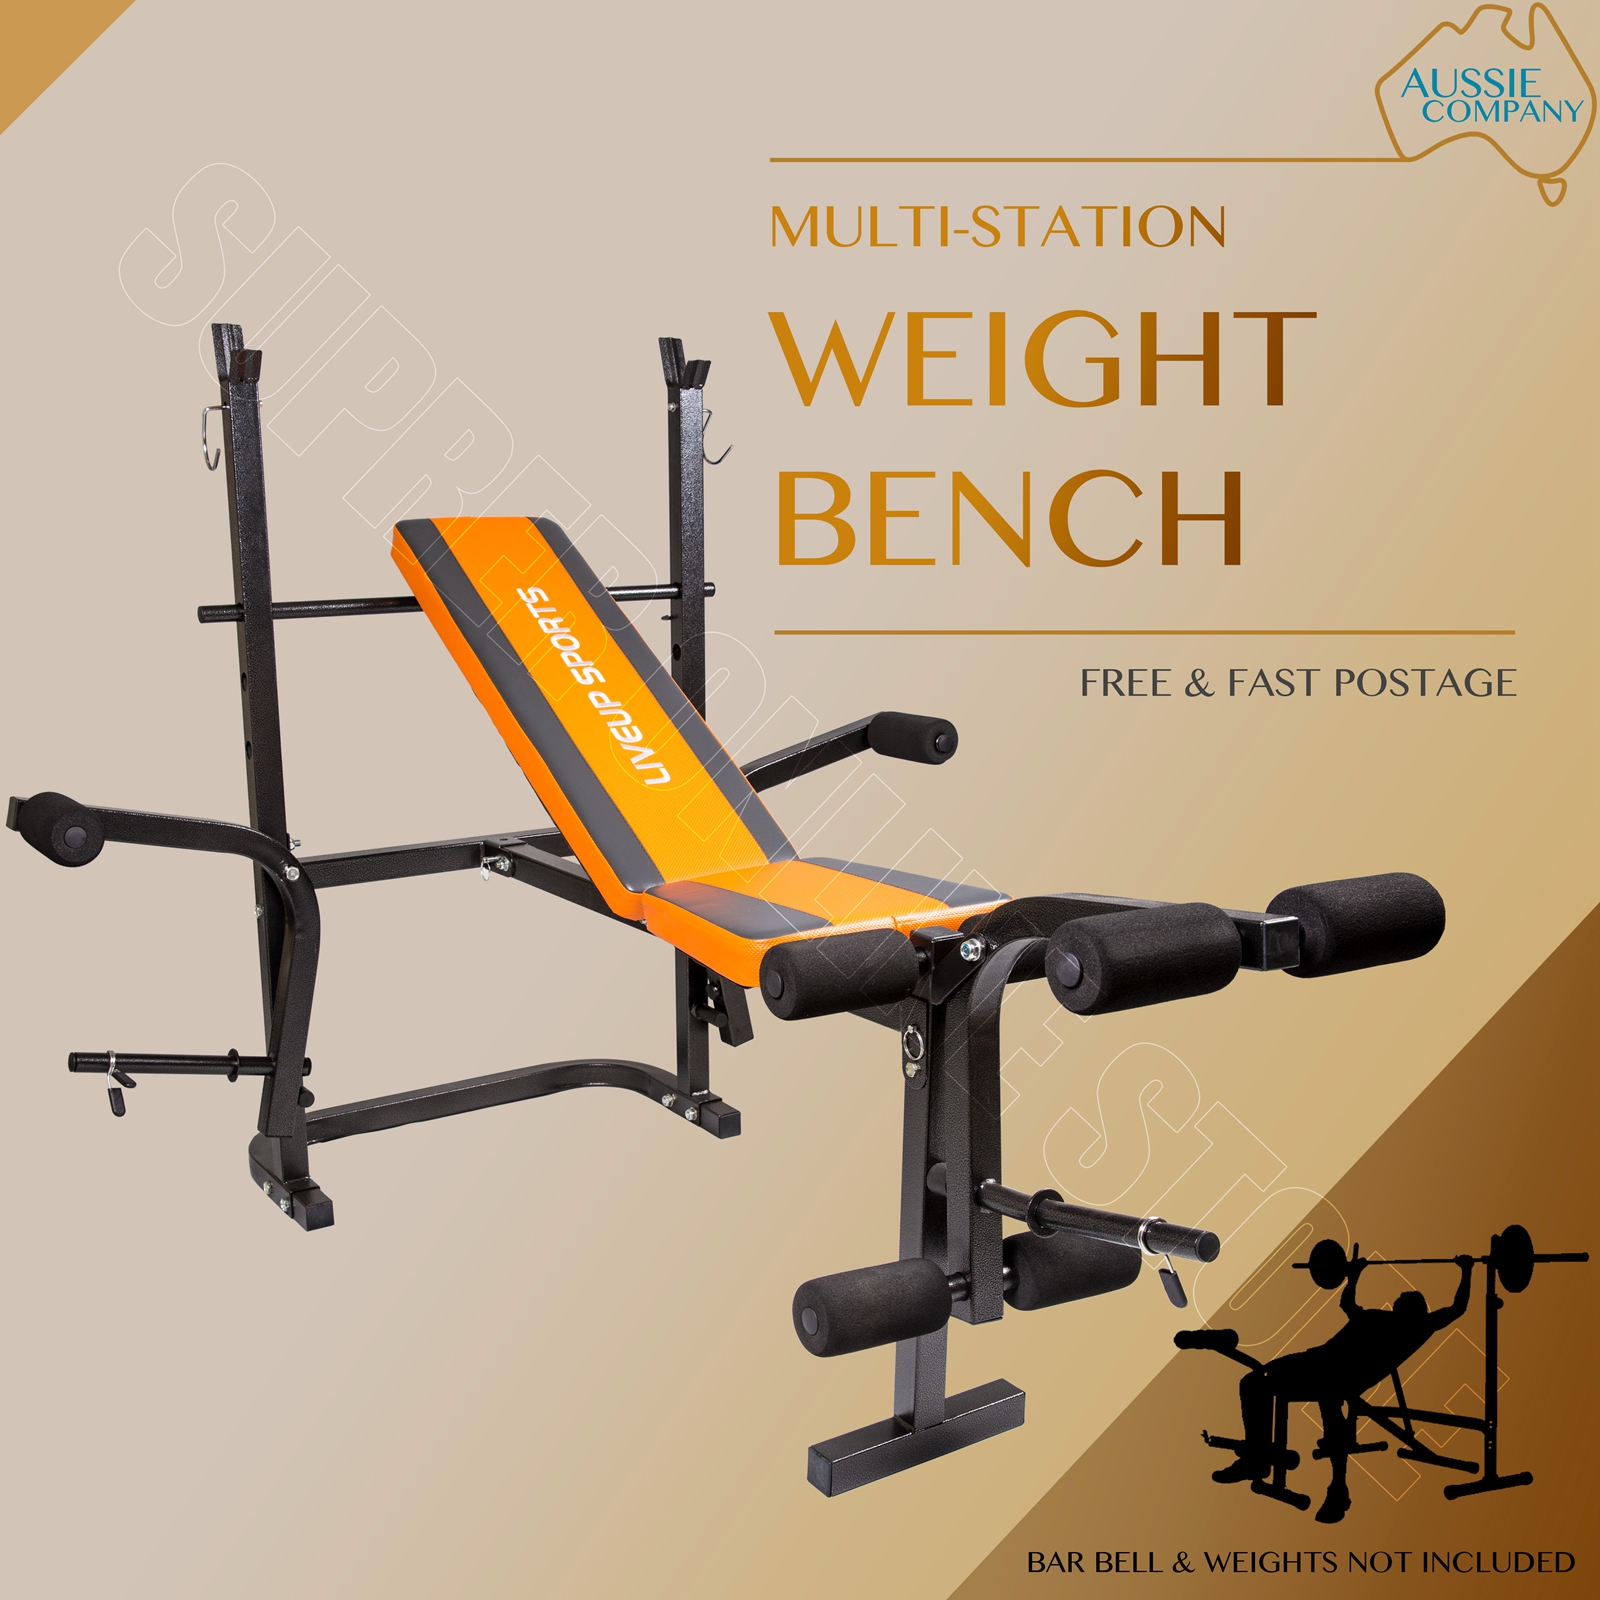 Weights Bench Multi Home Gym Equipment Dumbell Workout Abs: Multi-Station Weights Bench Home Gym Fitness Curl Press